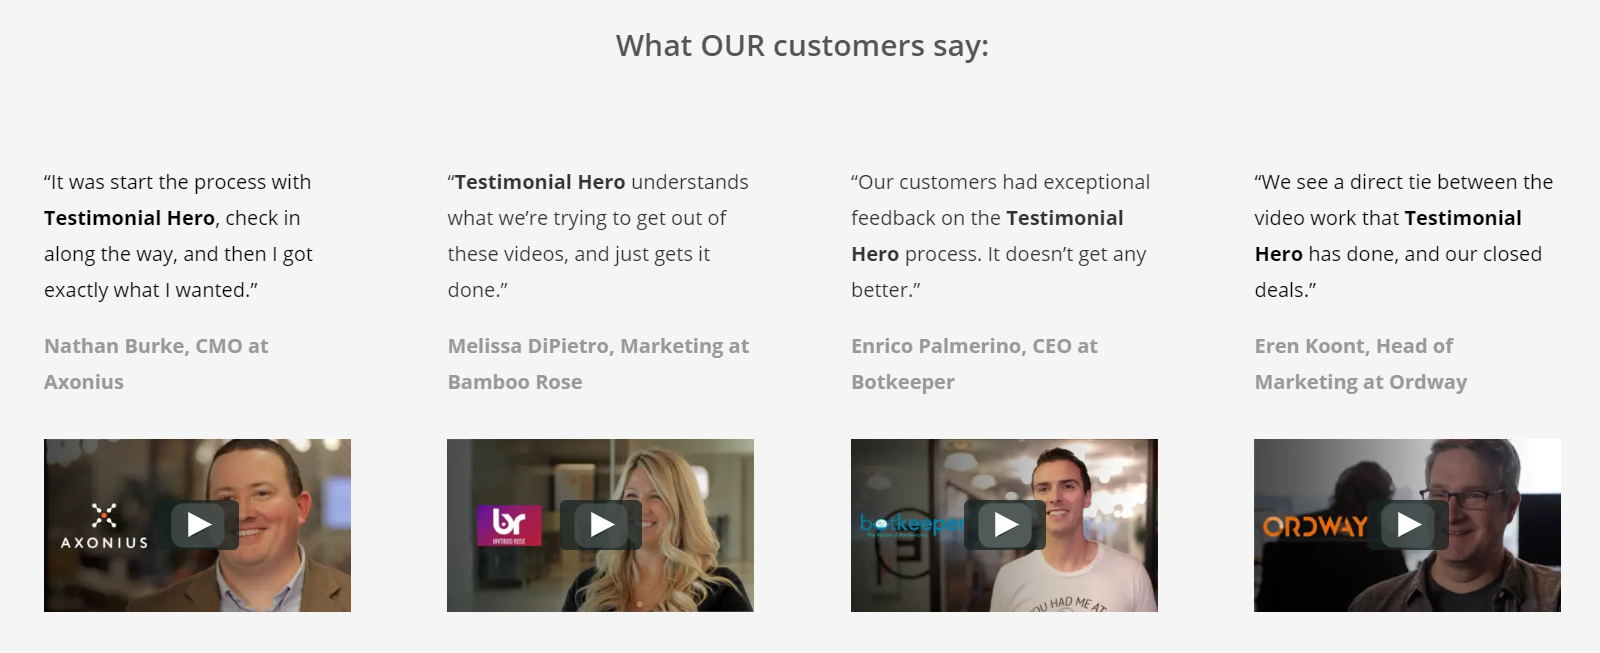 Testimonial Hero shows B2B customer testimonial videos.